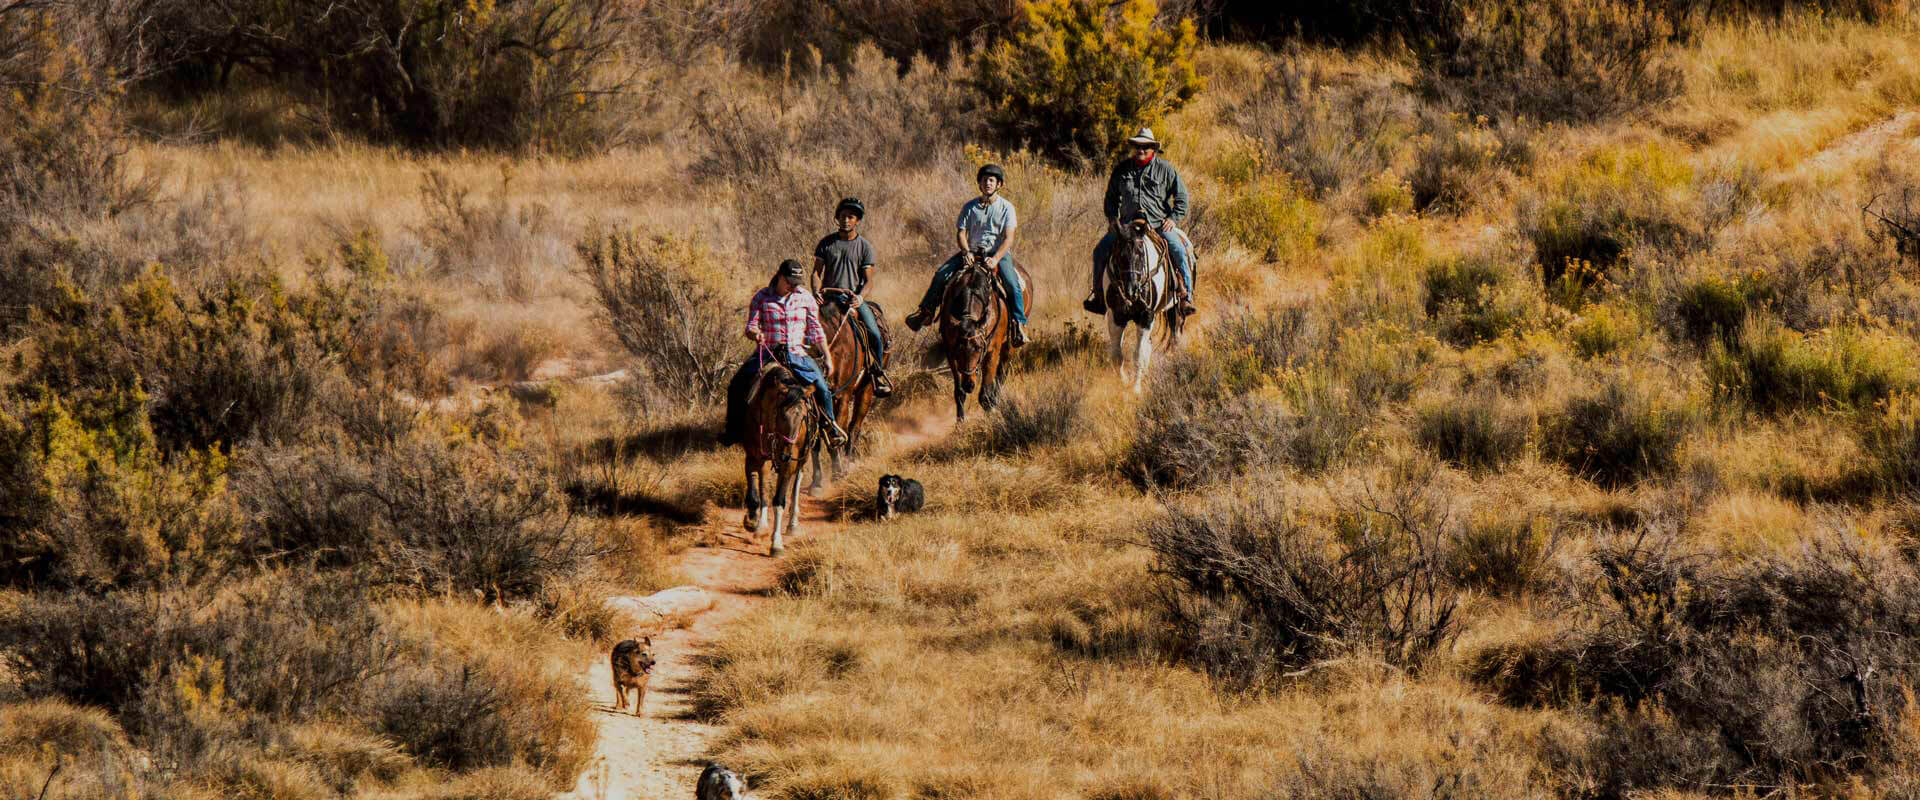 Individual-Therapy-trail-ride